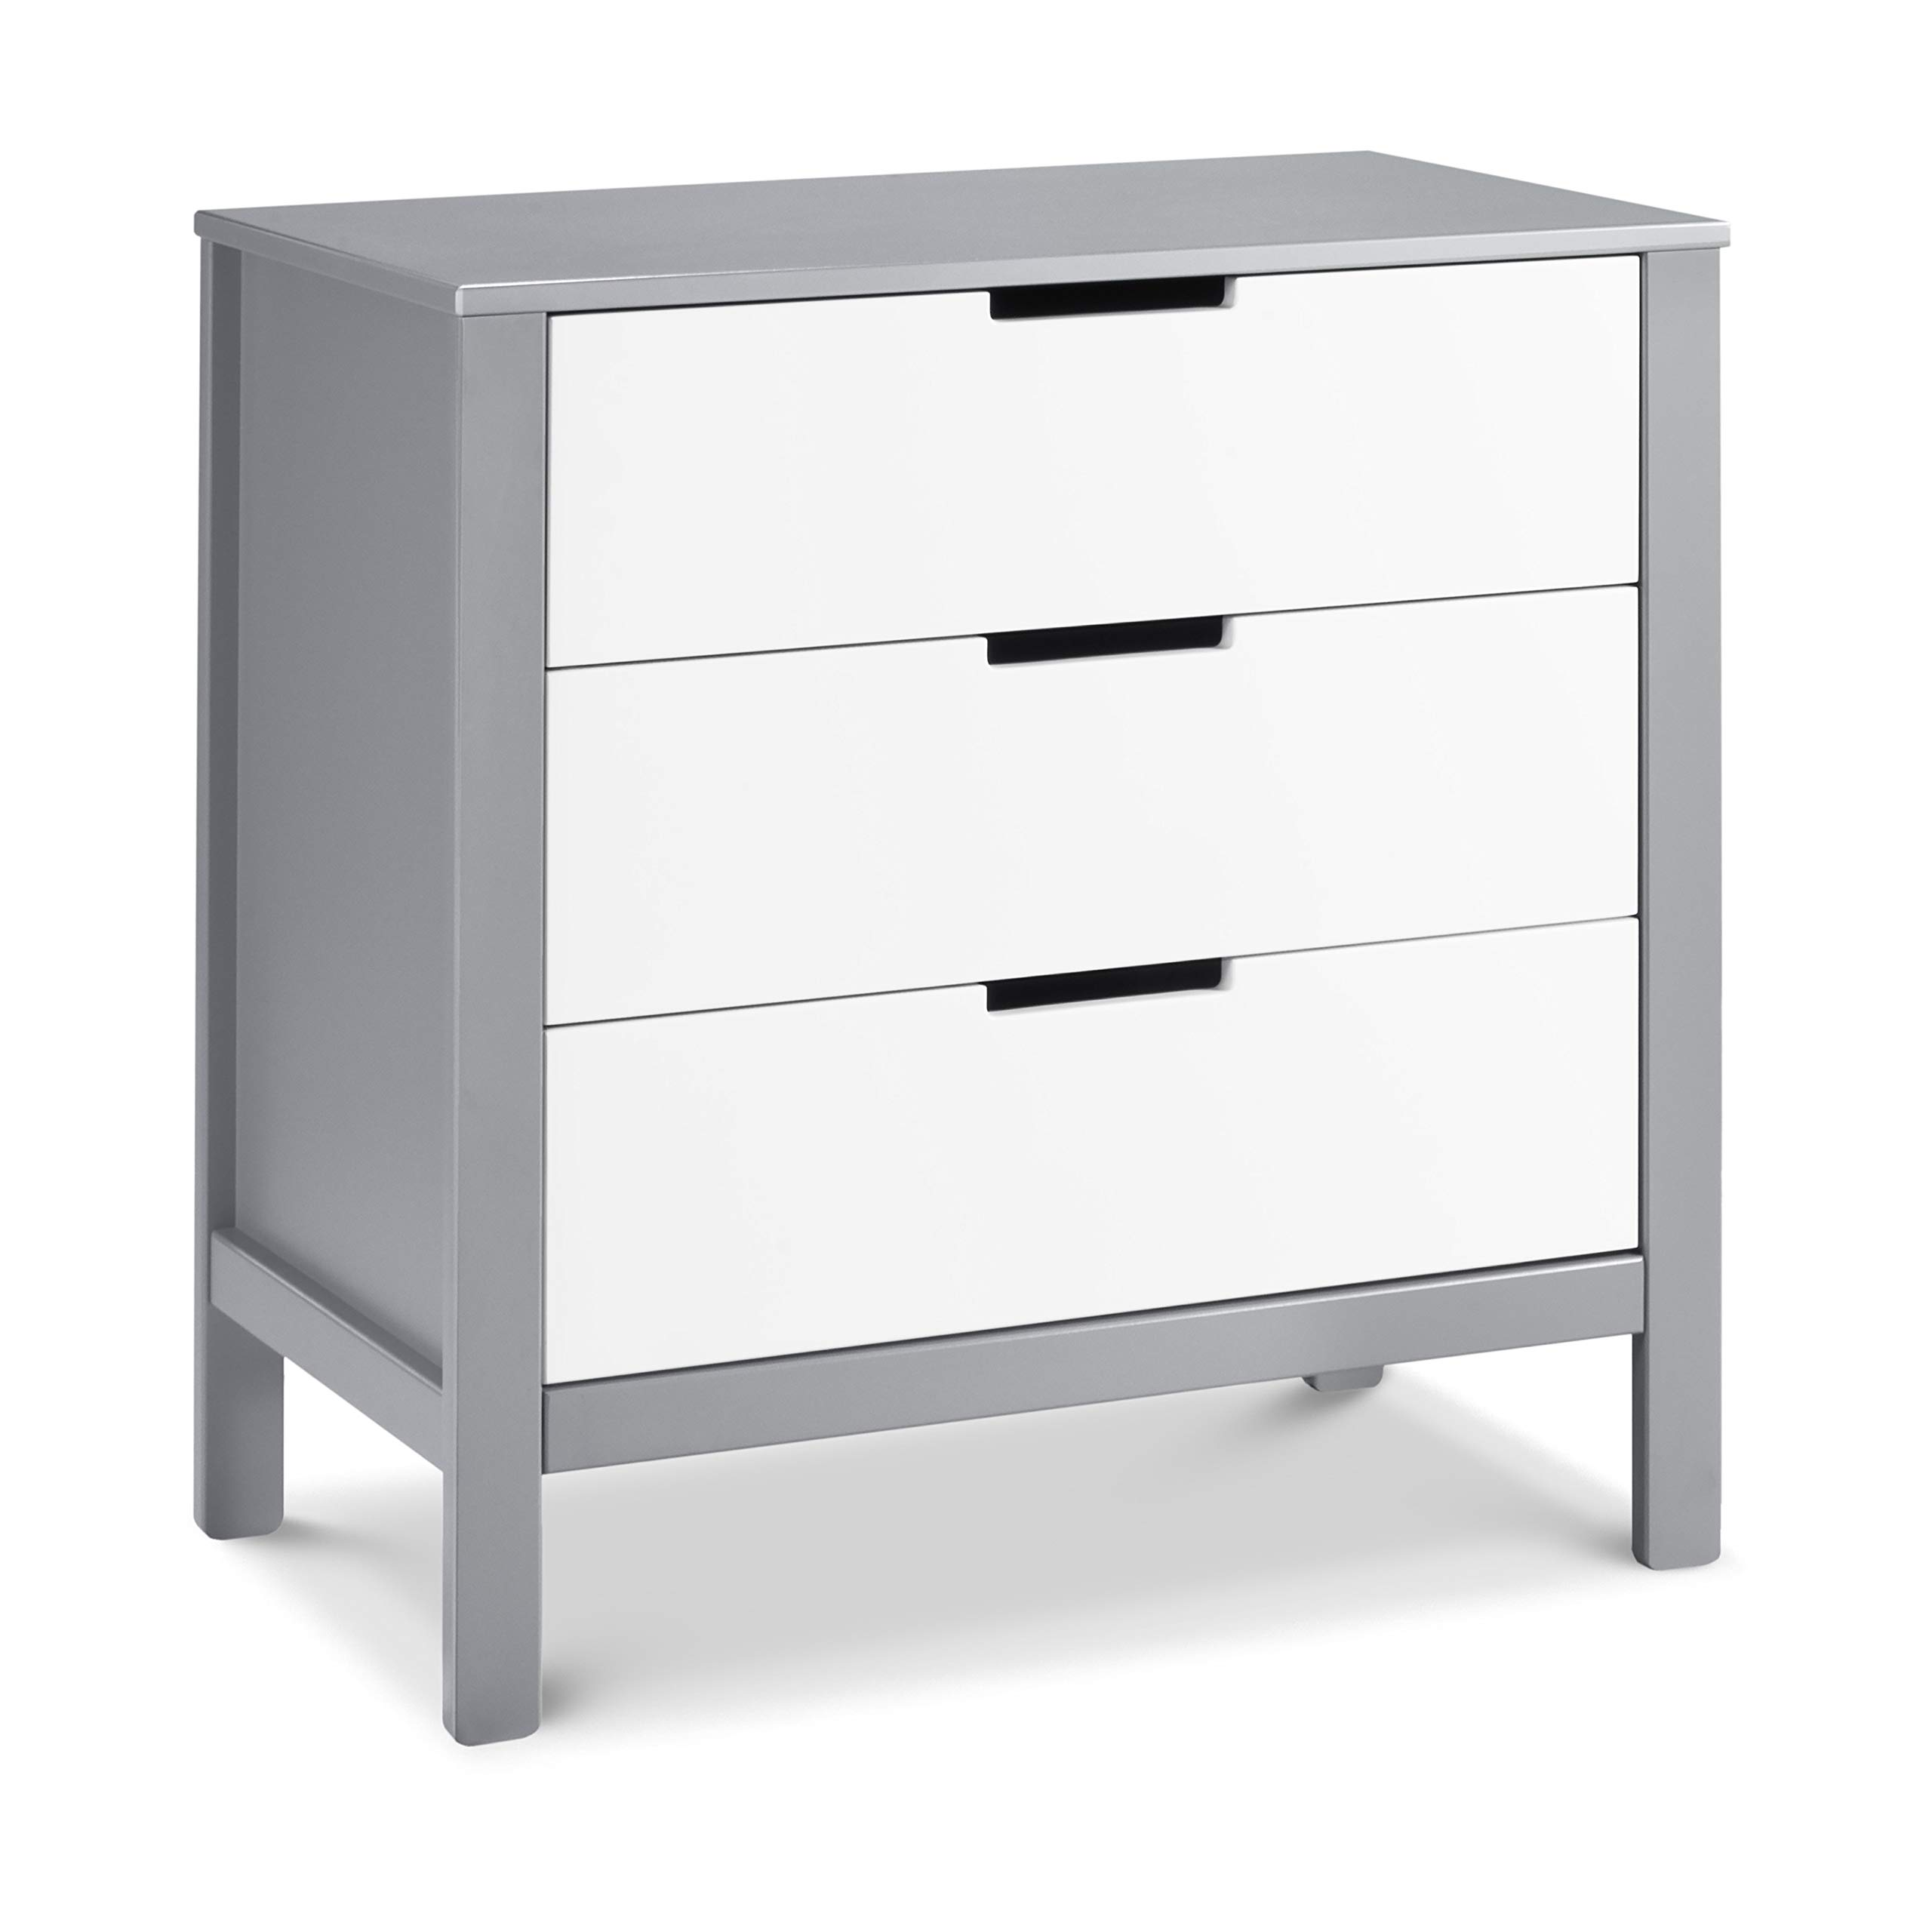 Carter's by DaVinci Colby 3-Drawer Dresser, Grey and White by Carter's by DaVinci